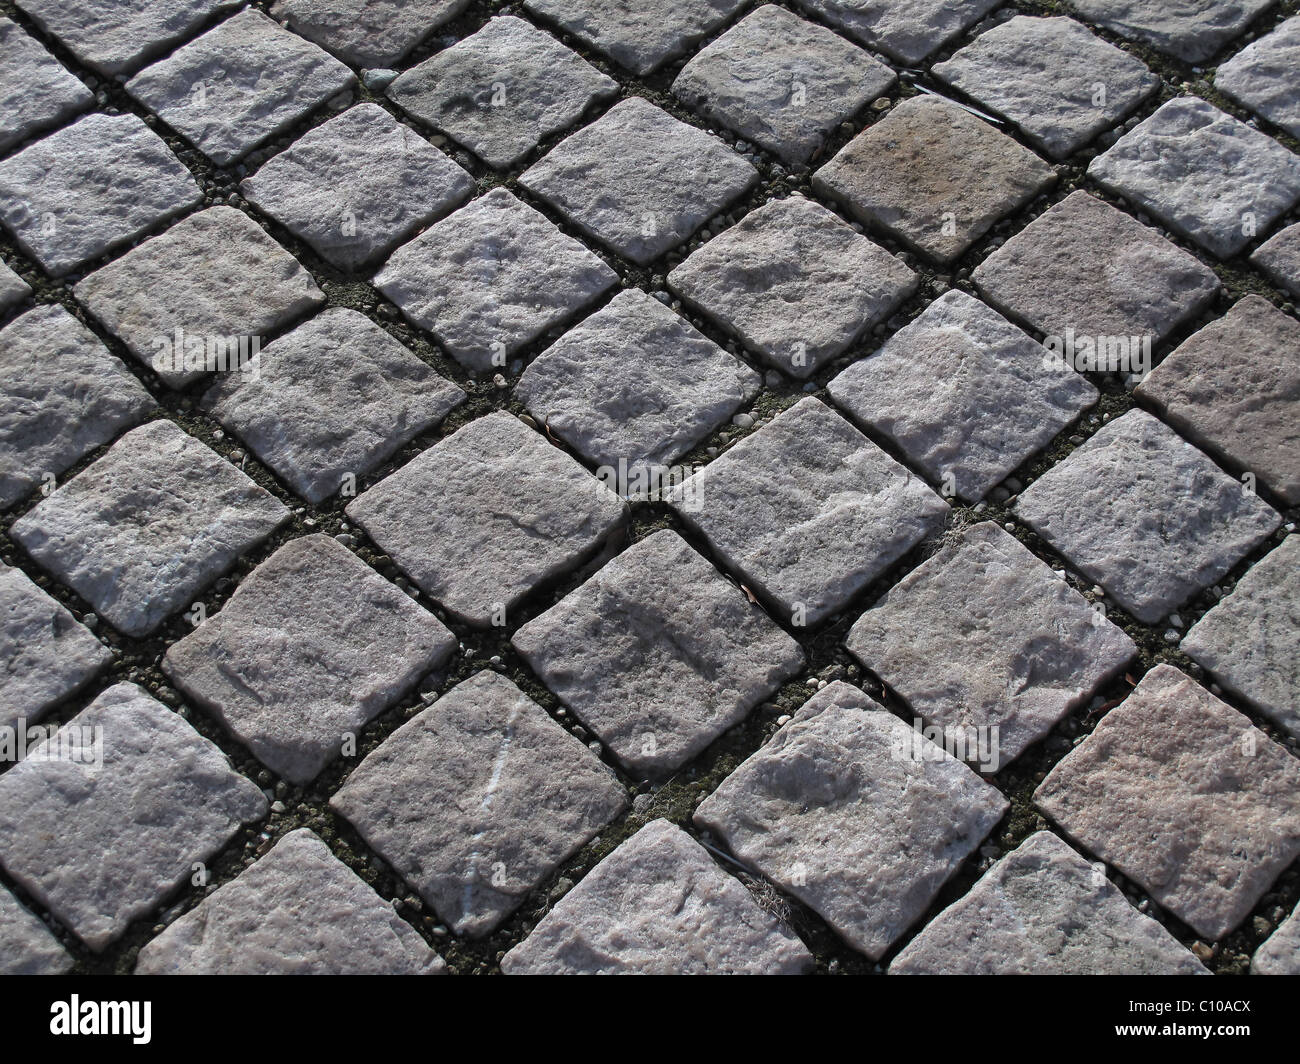 Cobbles or setts in a diagonal pattern - Stock Image